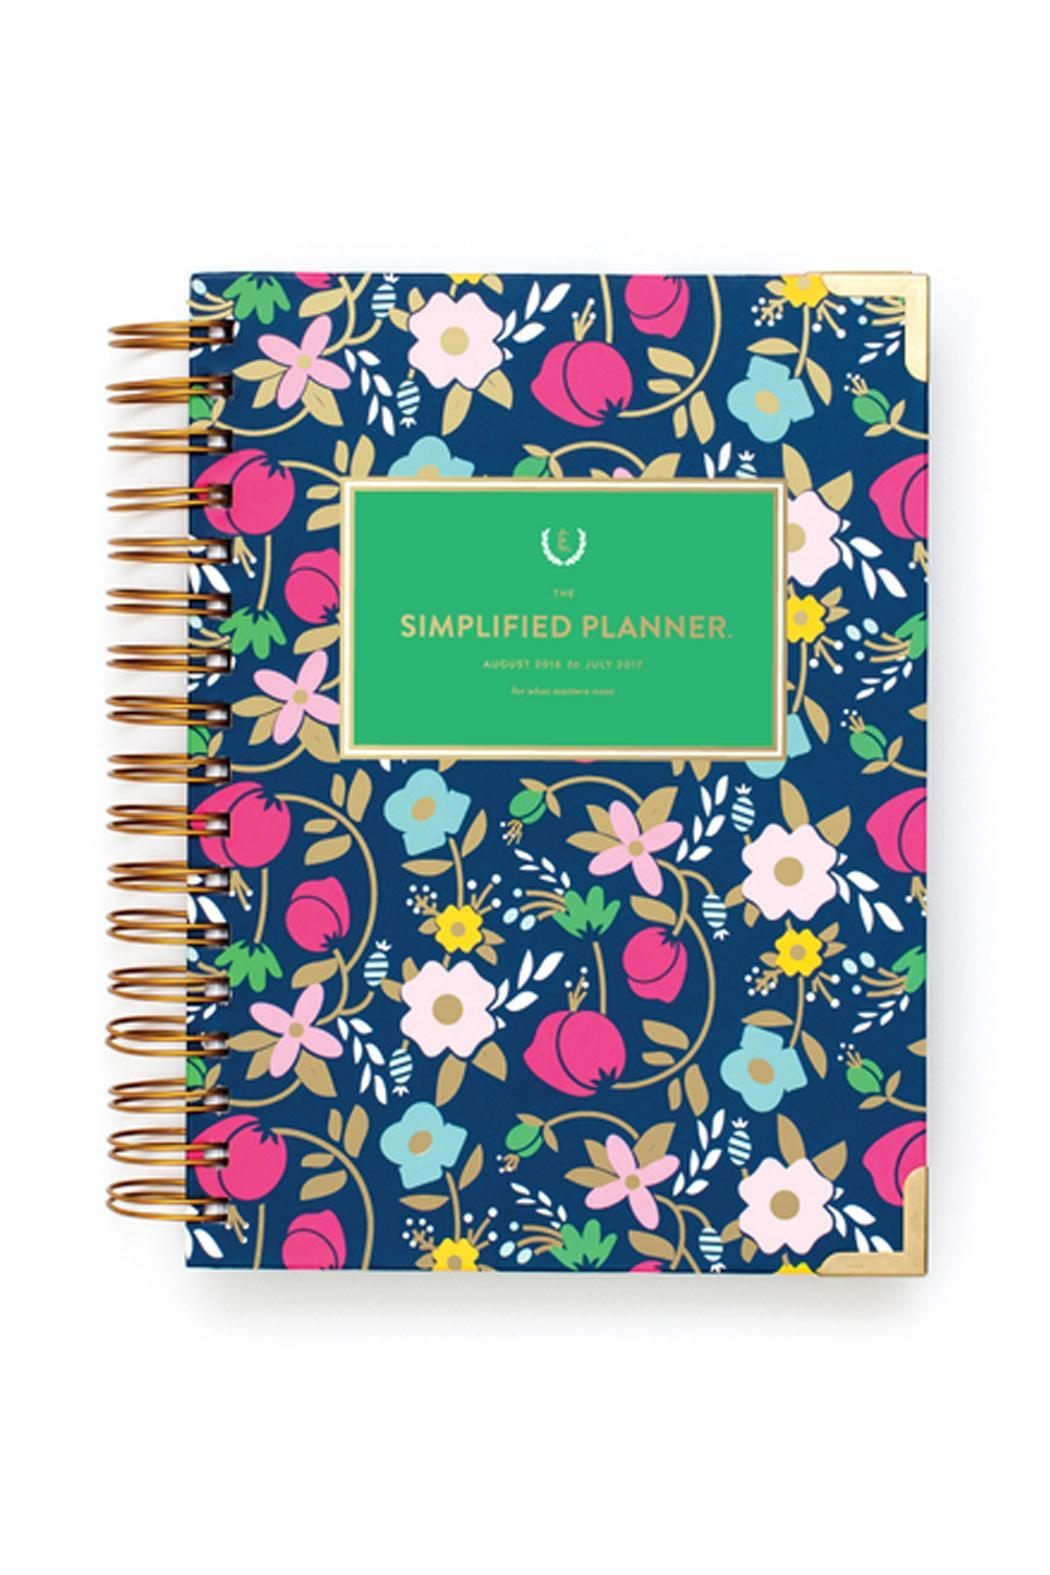 emily ley 2016 17 academic planner from michigan by r s v p